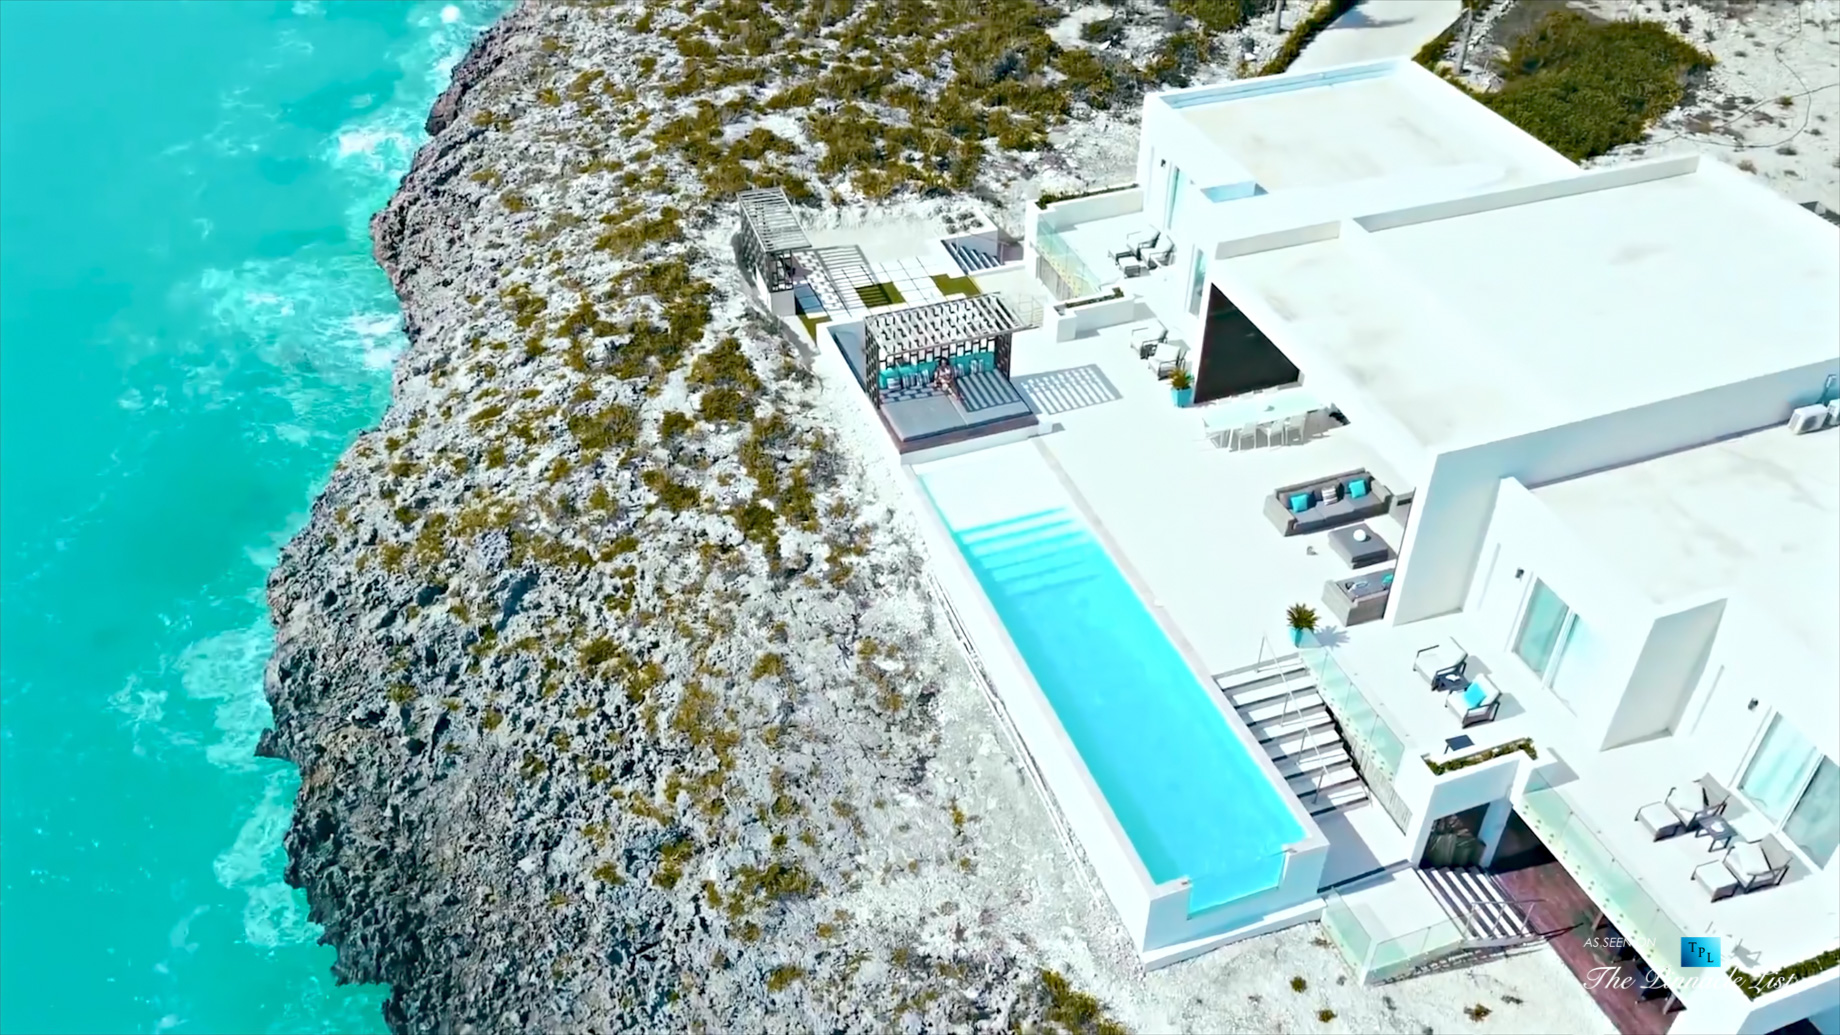 Tip of the Tail Villa – Providenciales, Turks and Caicos Islands – Drone Aerial Caribbean House Infinity Pool Deck – Luxury Real Estate – South Shore Peninsula Home